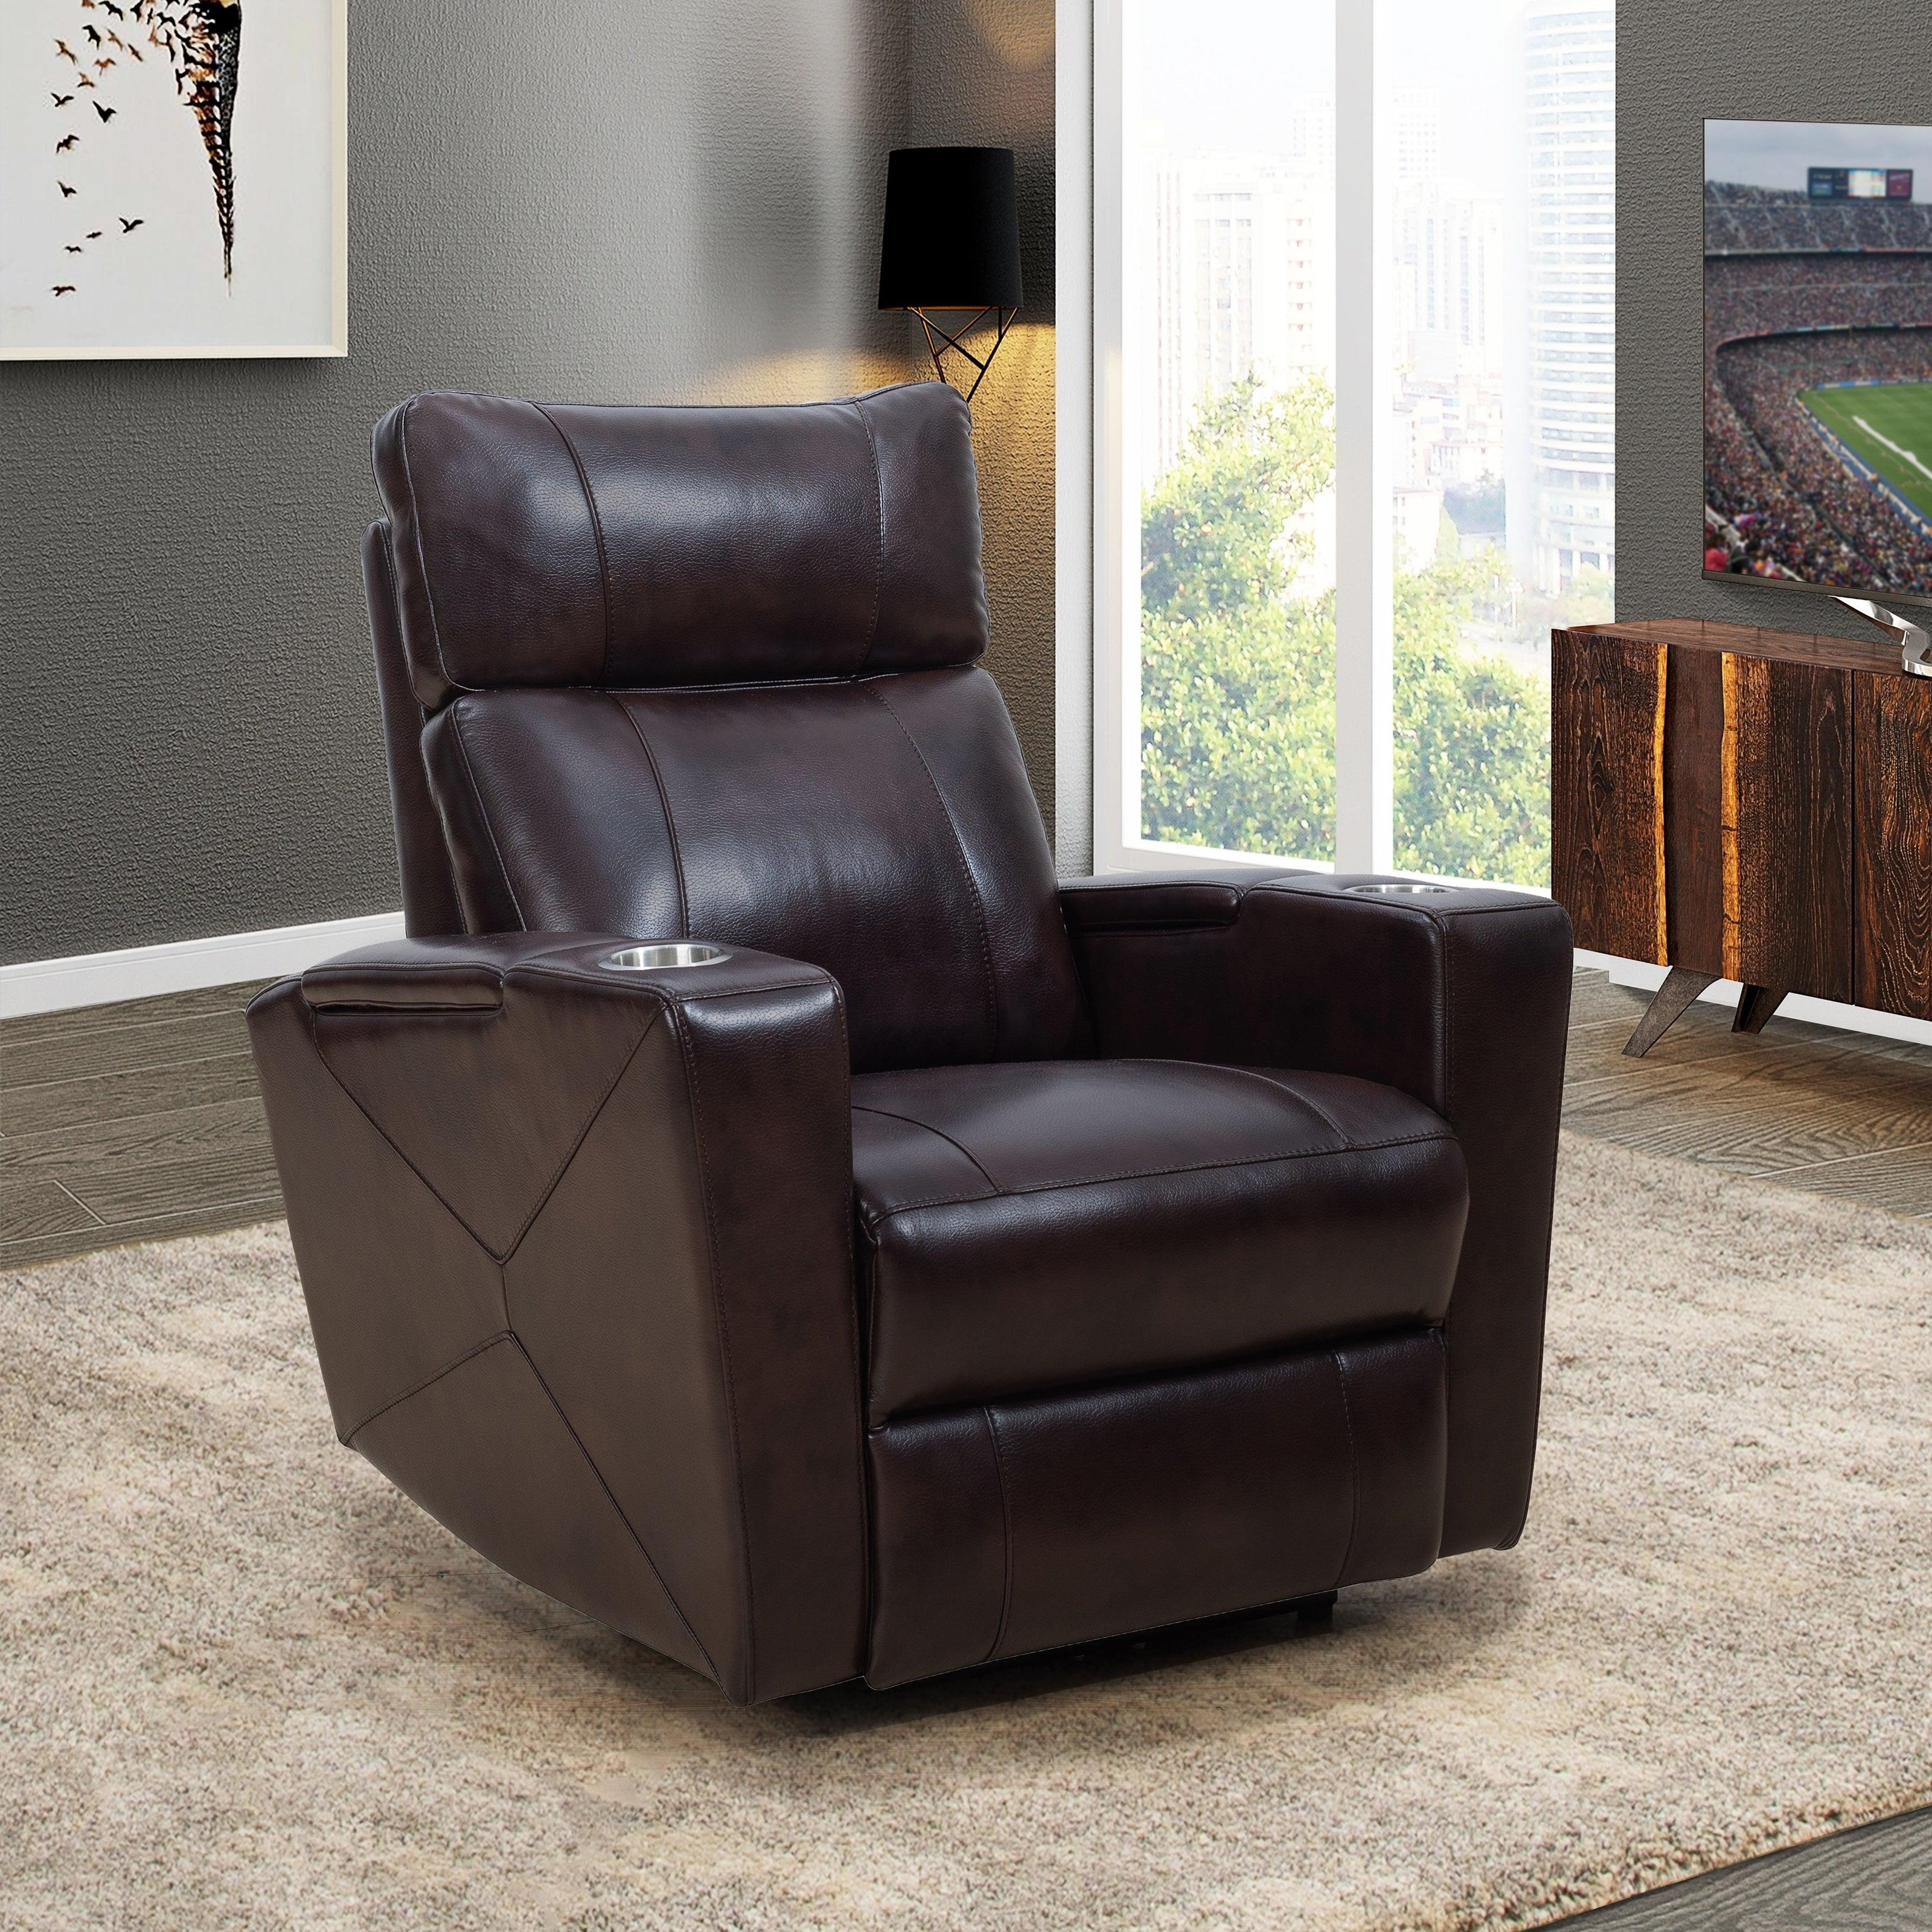 Silas - Silas Power Theater Recliner by Abbyson at Morris Home